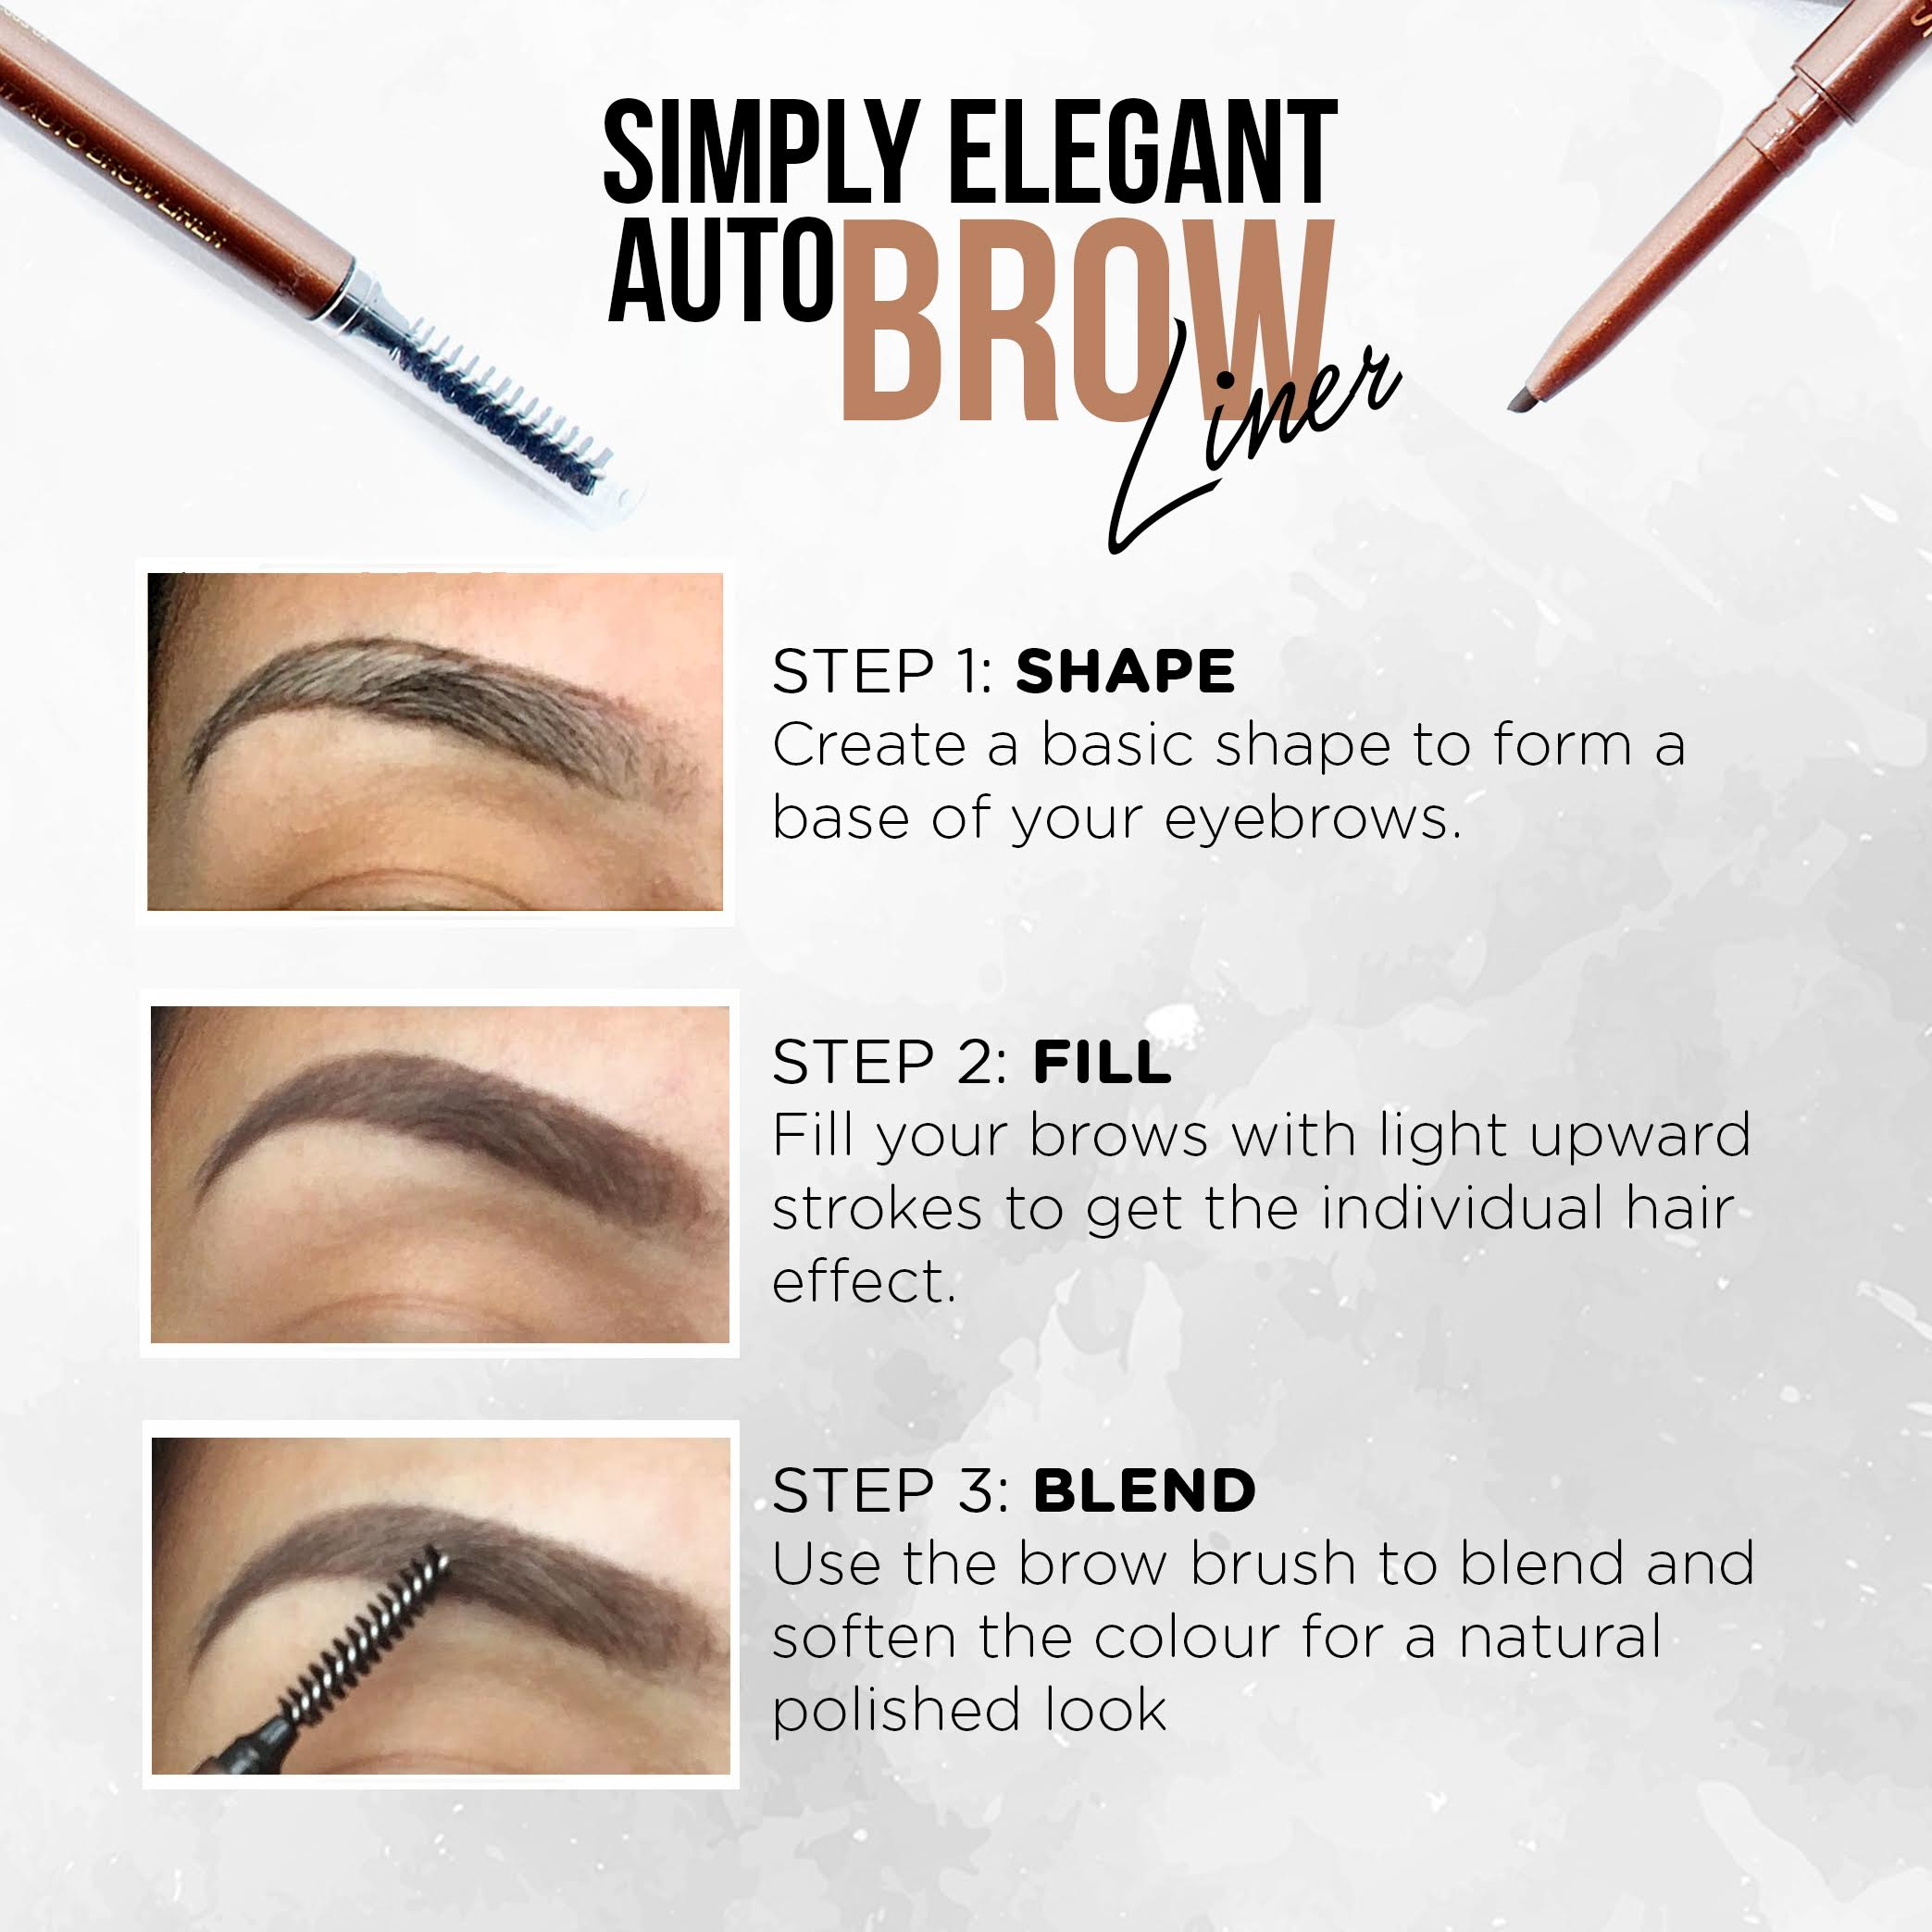 eyebrow-liner-description